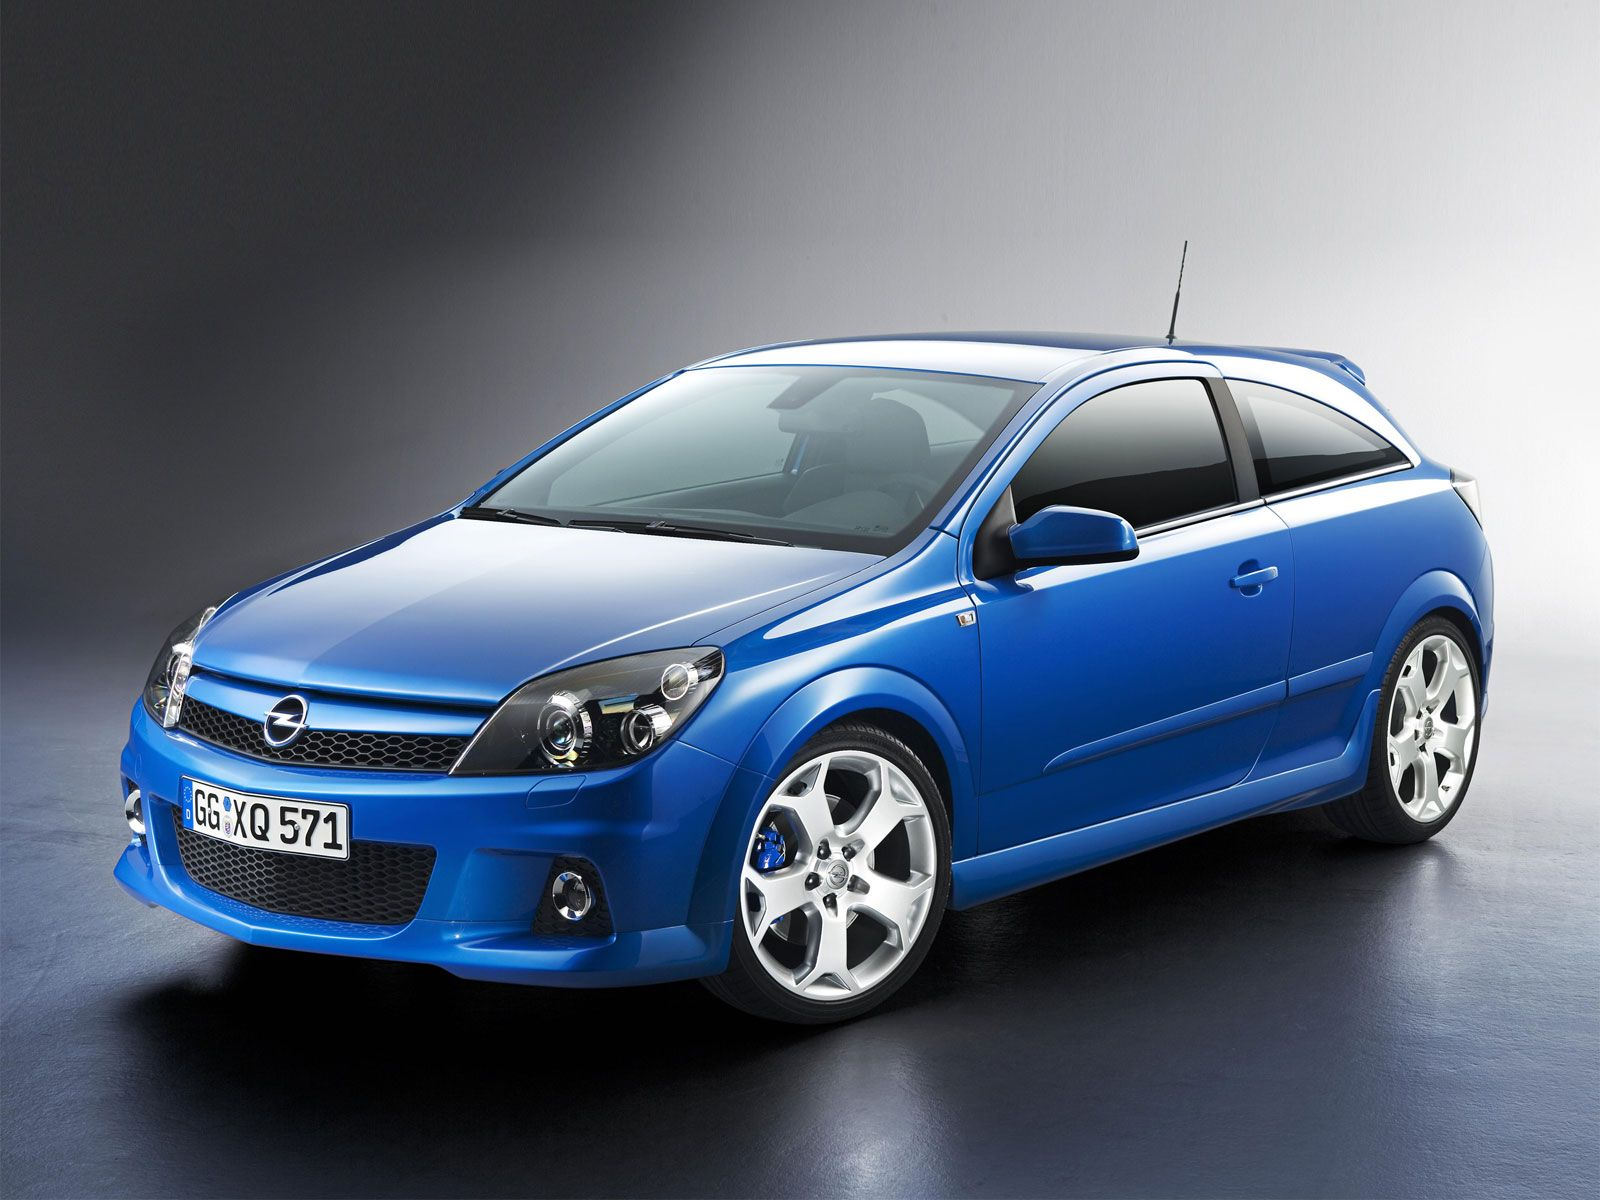 651 cars opel astra opc wallpaper - Wallpapers - Wallpapers HD ...